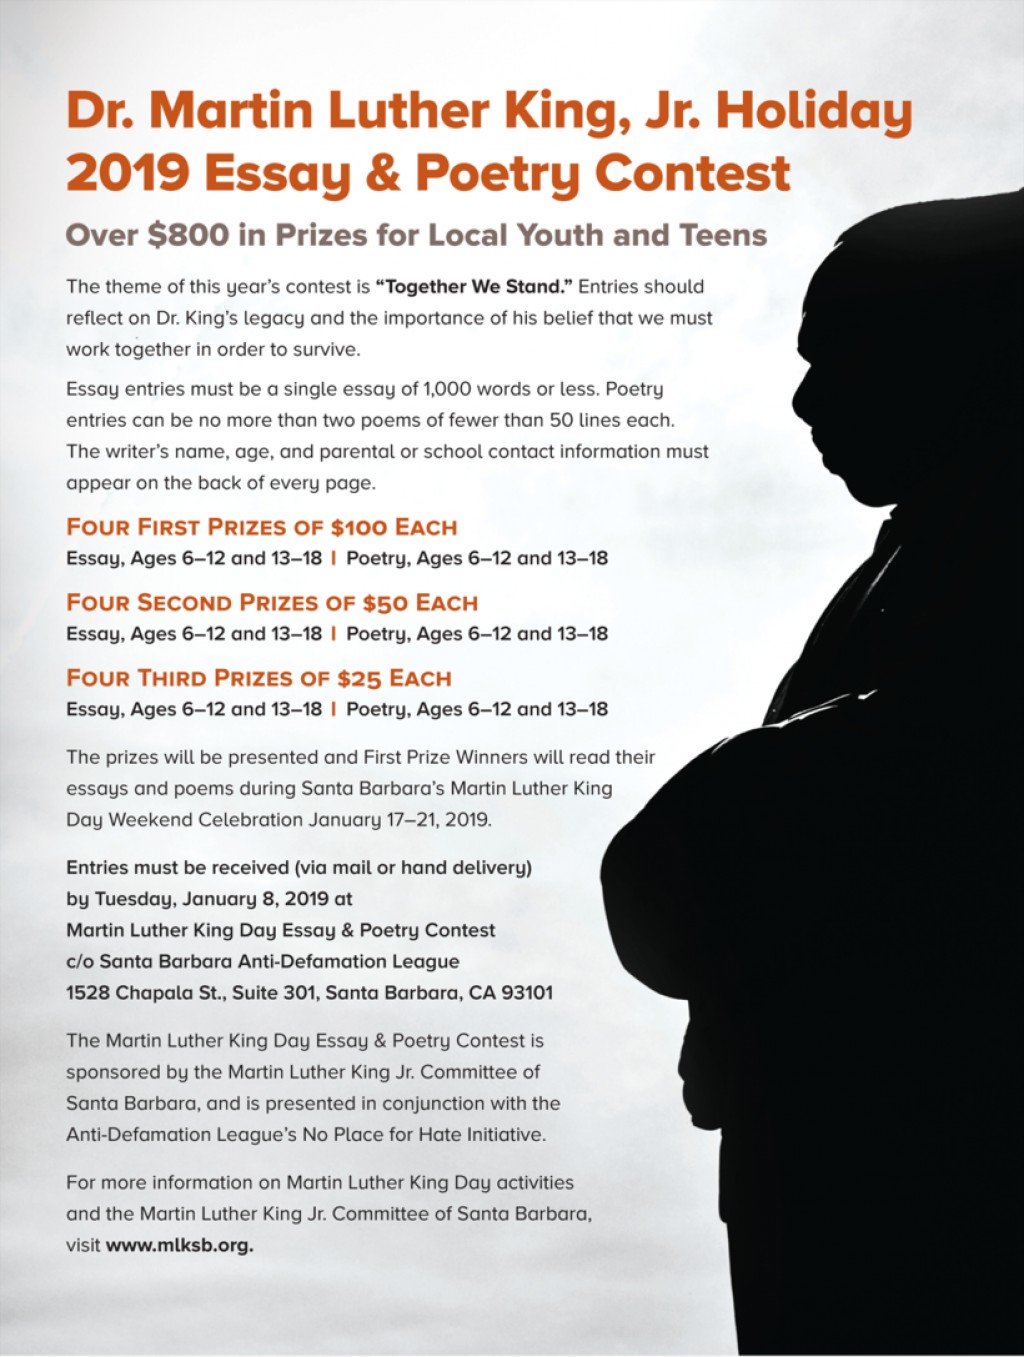 001 Essay Example Poetry Flyer Martin Luther King Thatsnotus